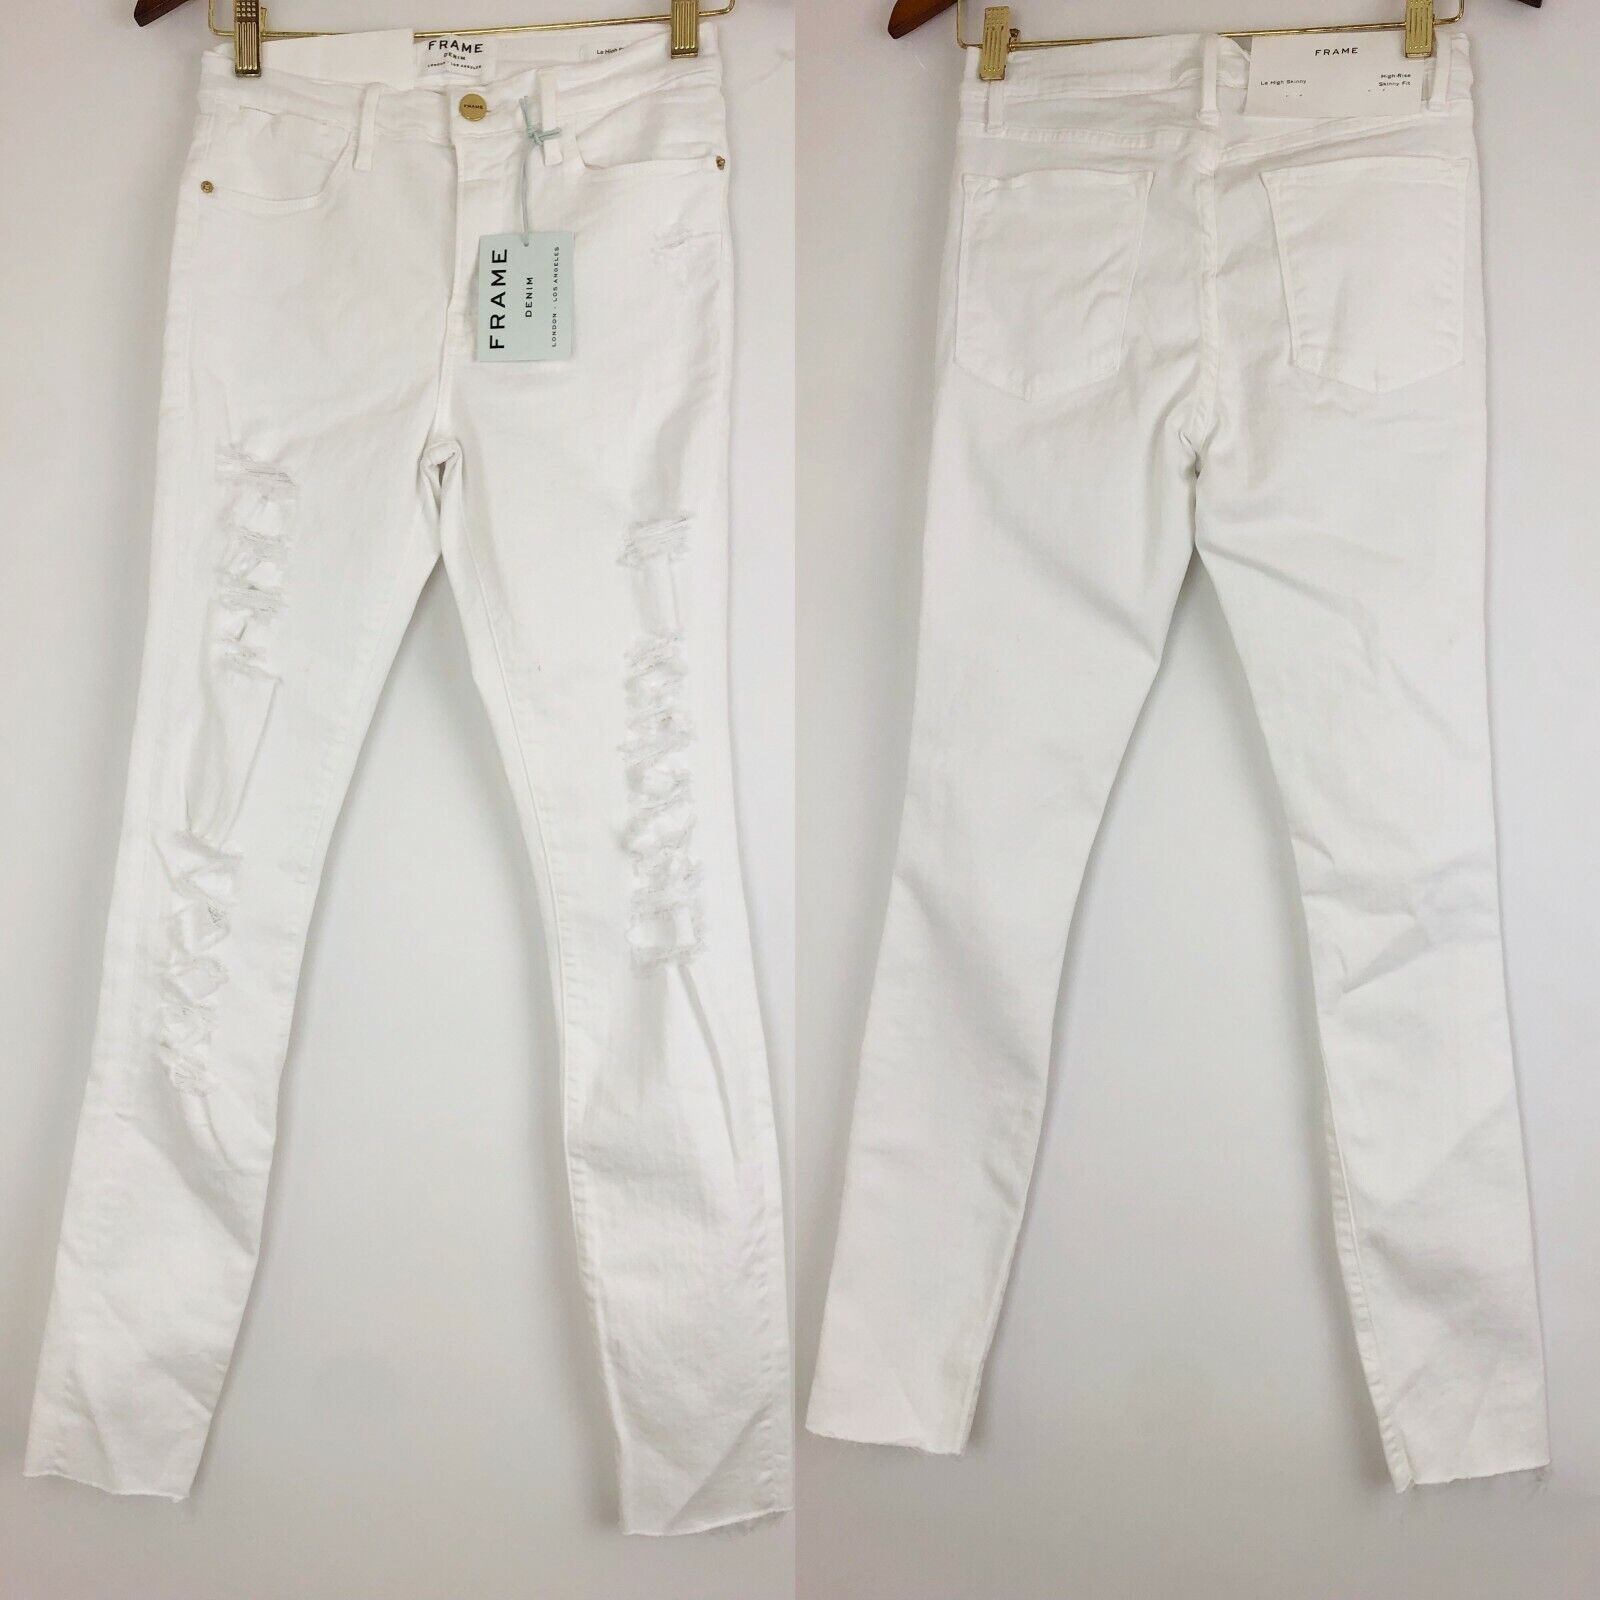 199 Frame Denim Le color High Waist Skinny Jeans Sz 28